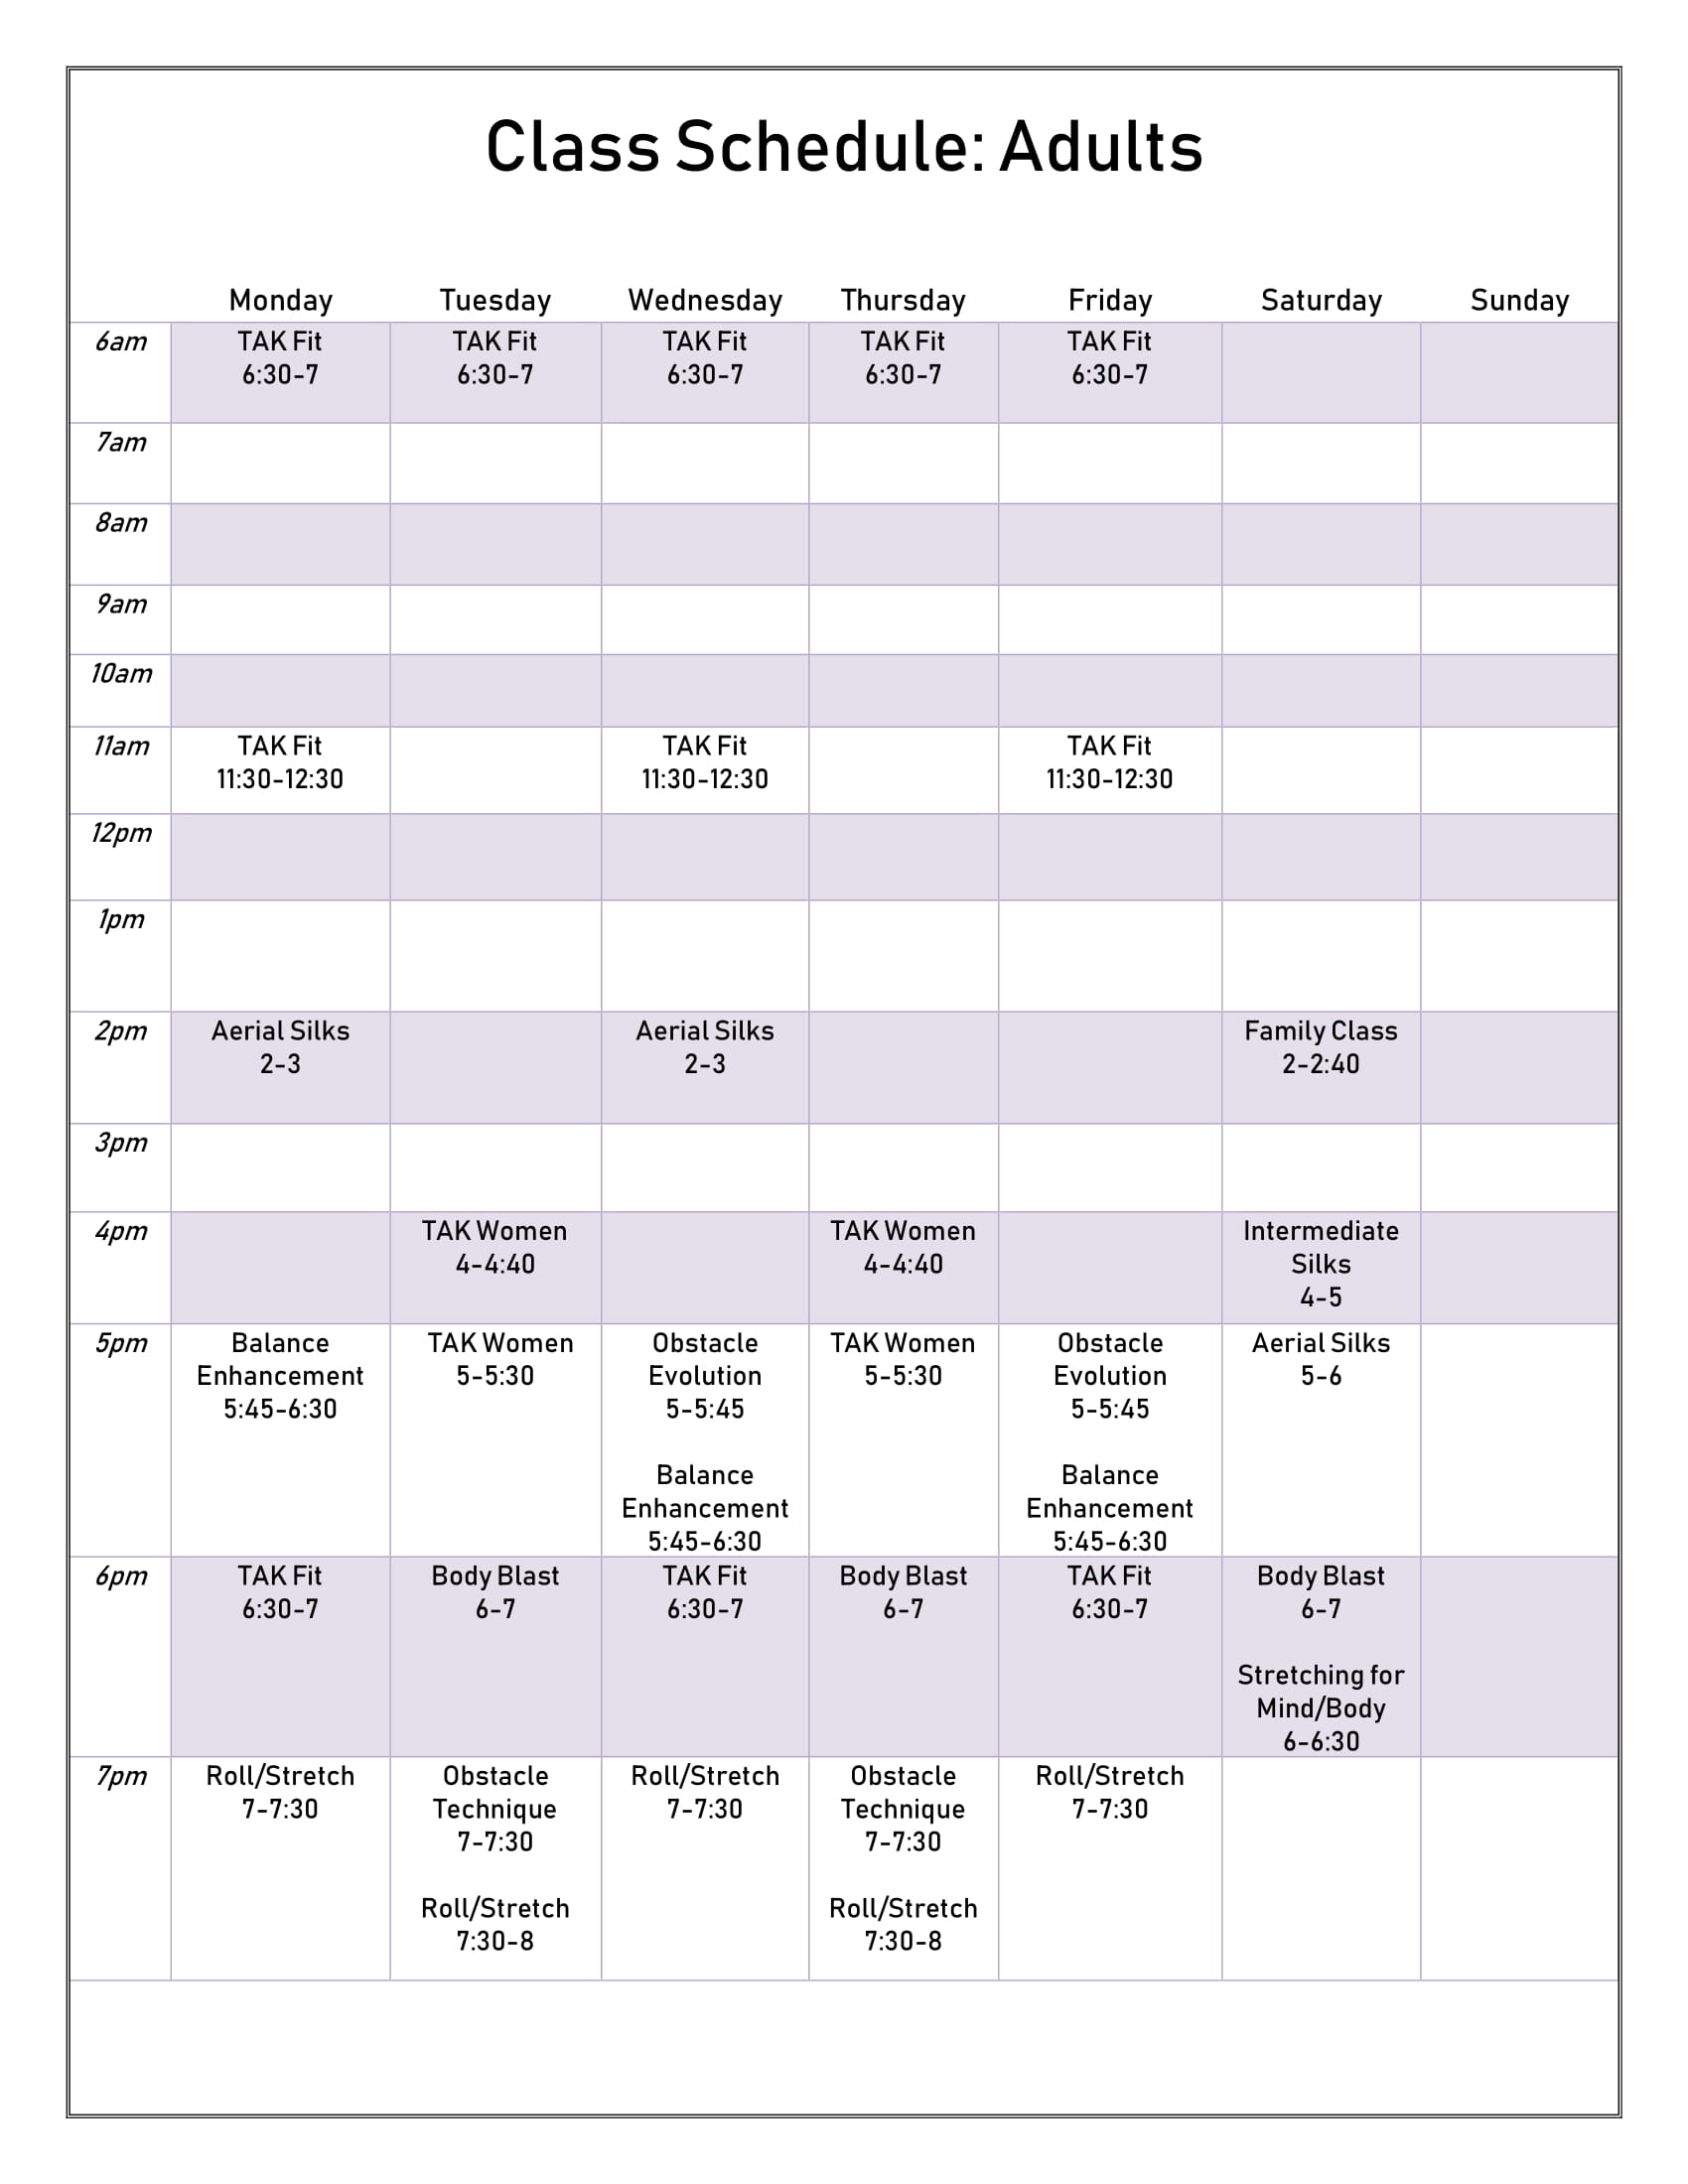 NEW CLASS SCHEDULE MOST RECENT-2.jpg